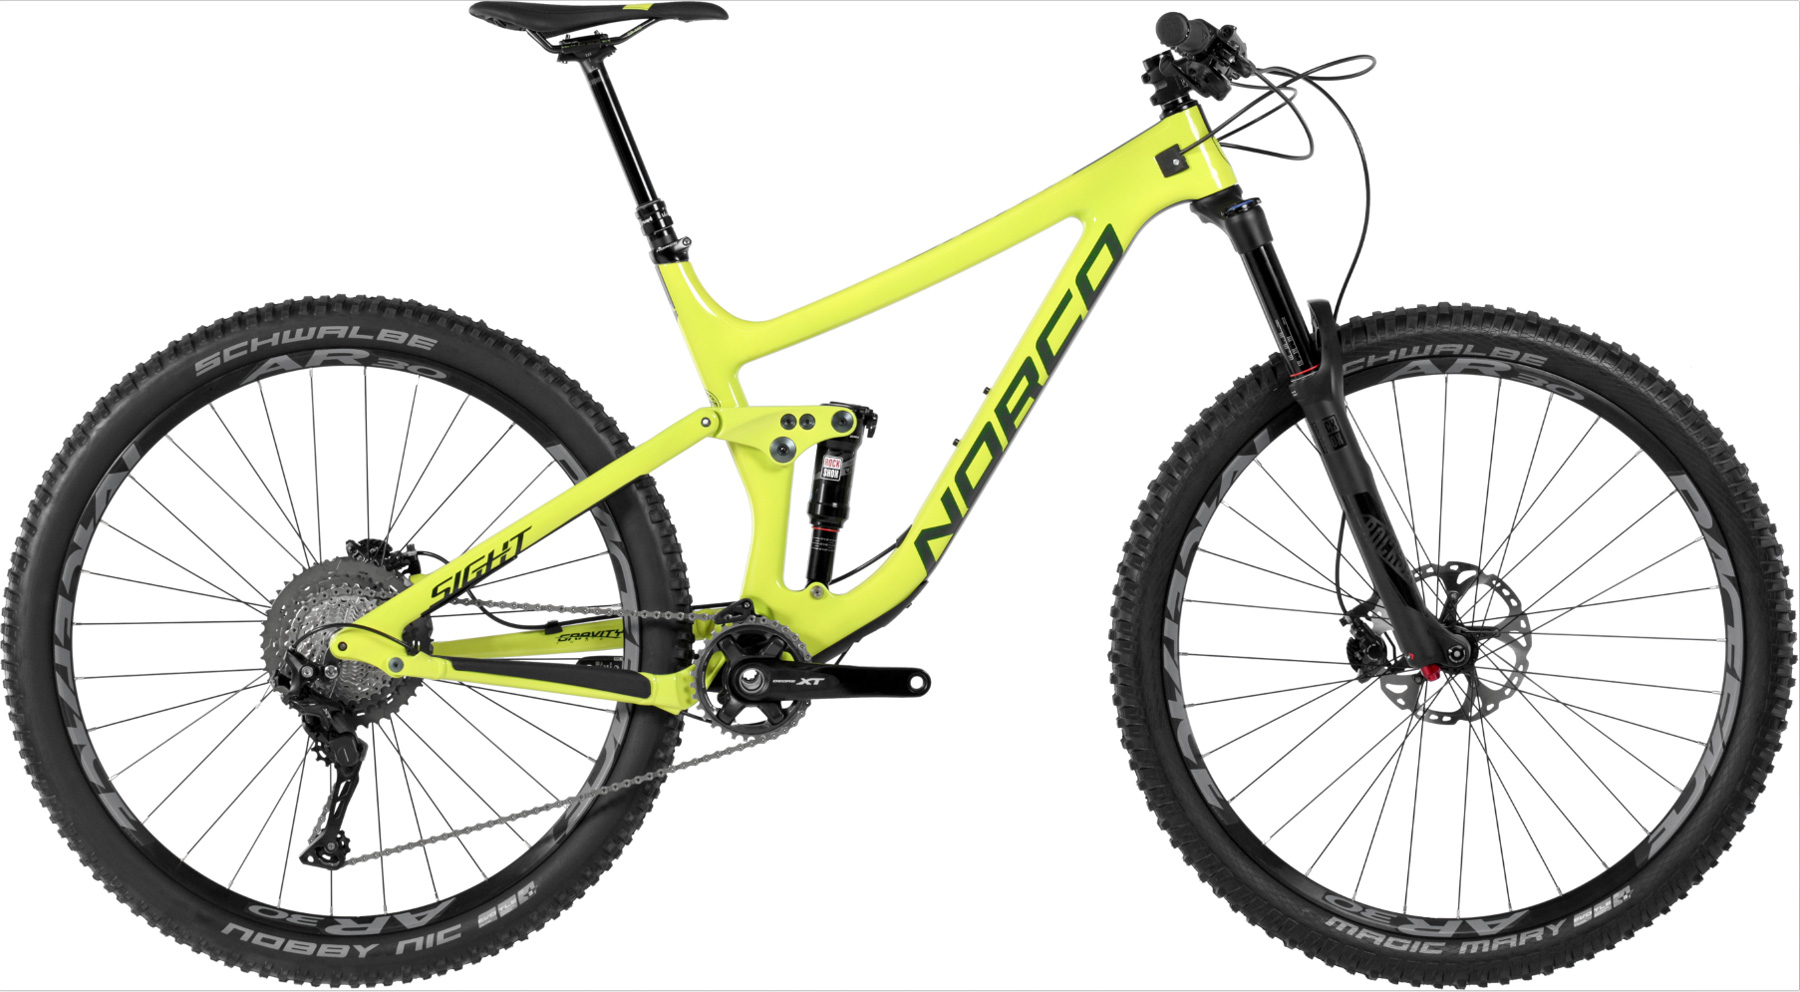 Norco Sight C9.2 CHF 5399.00